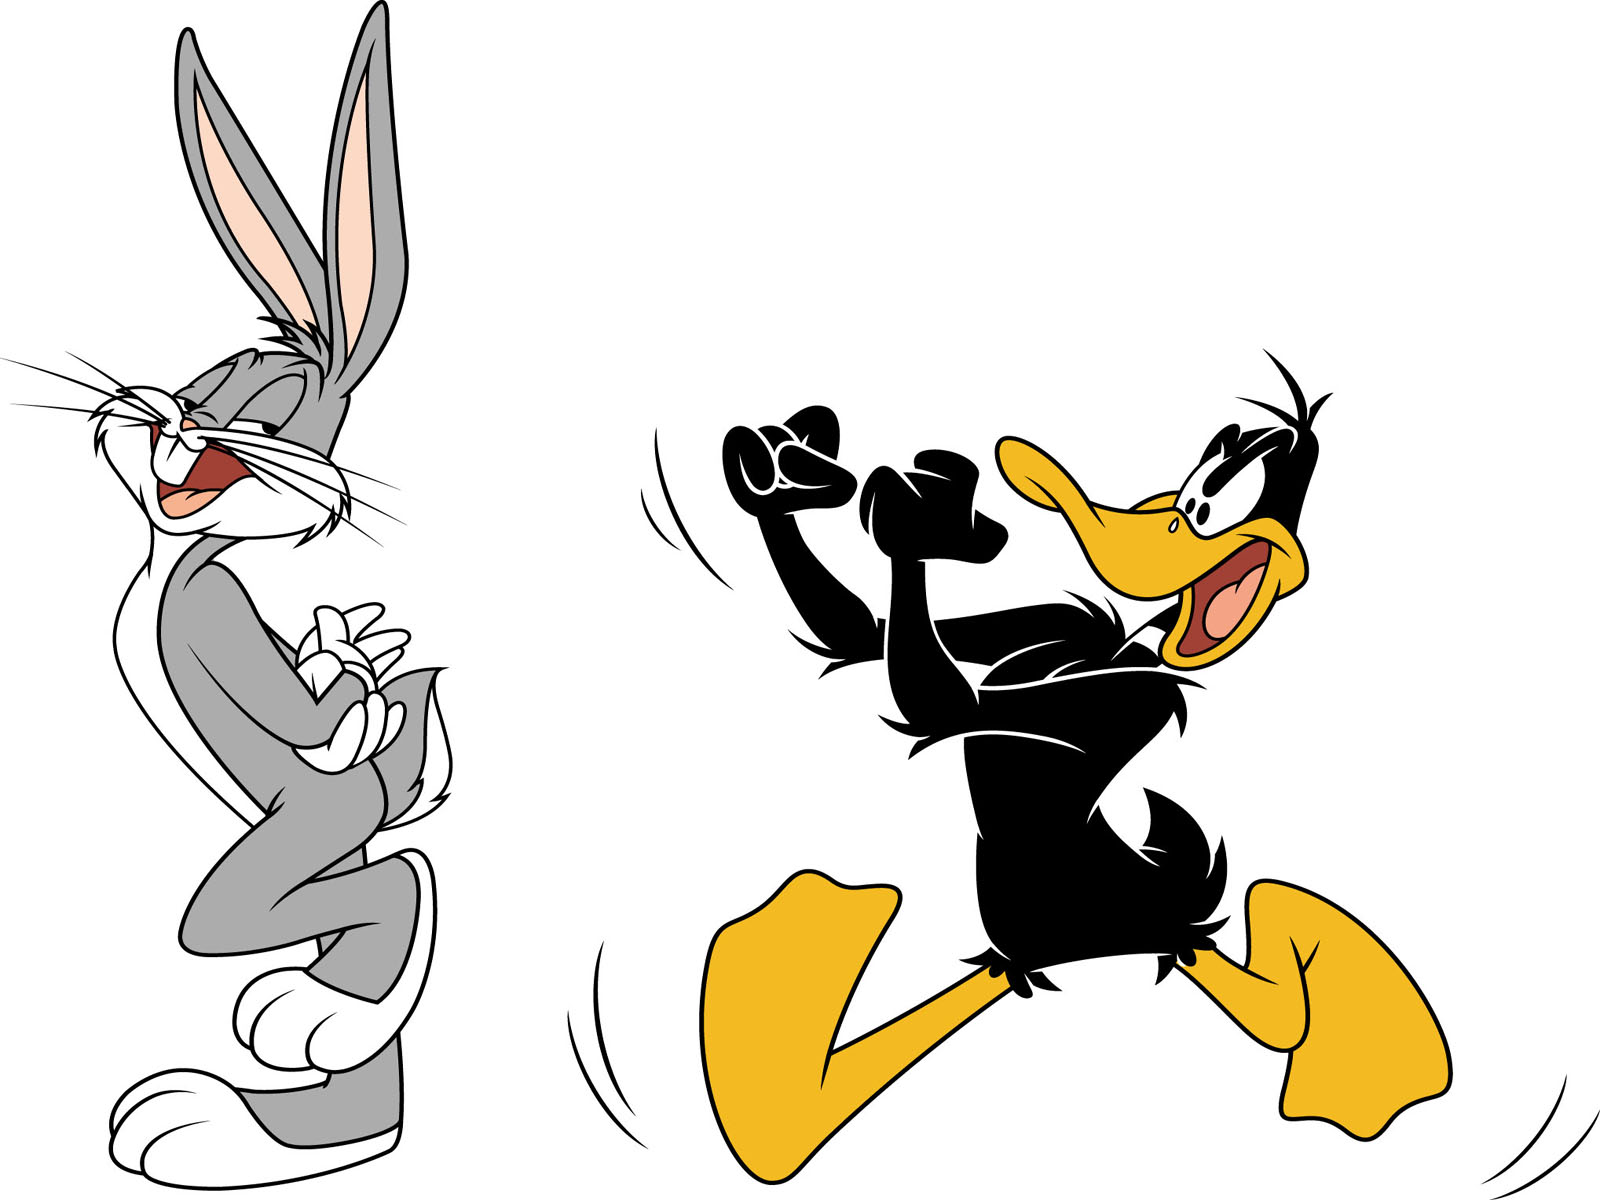 Looney tunes bugs bunny and daffy duck